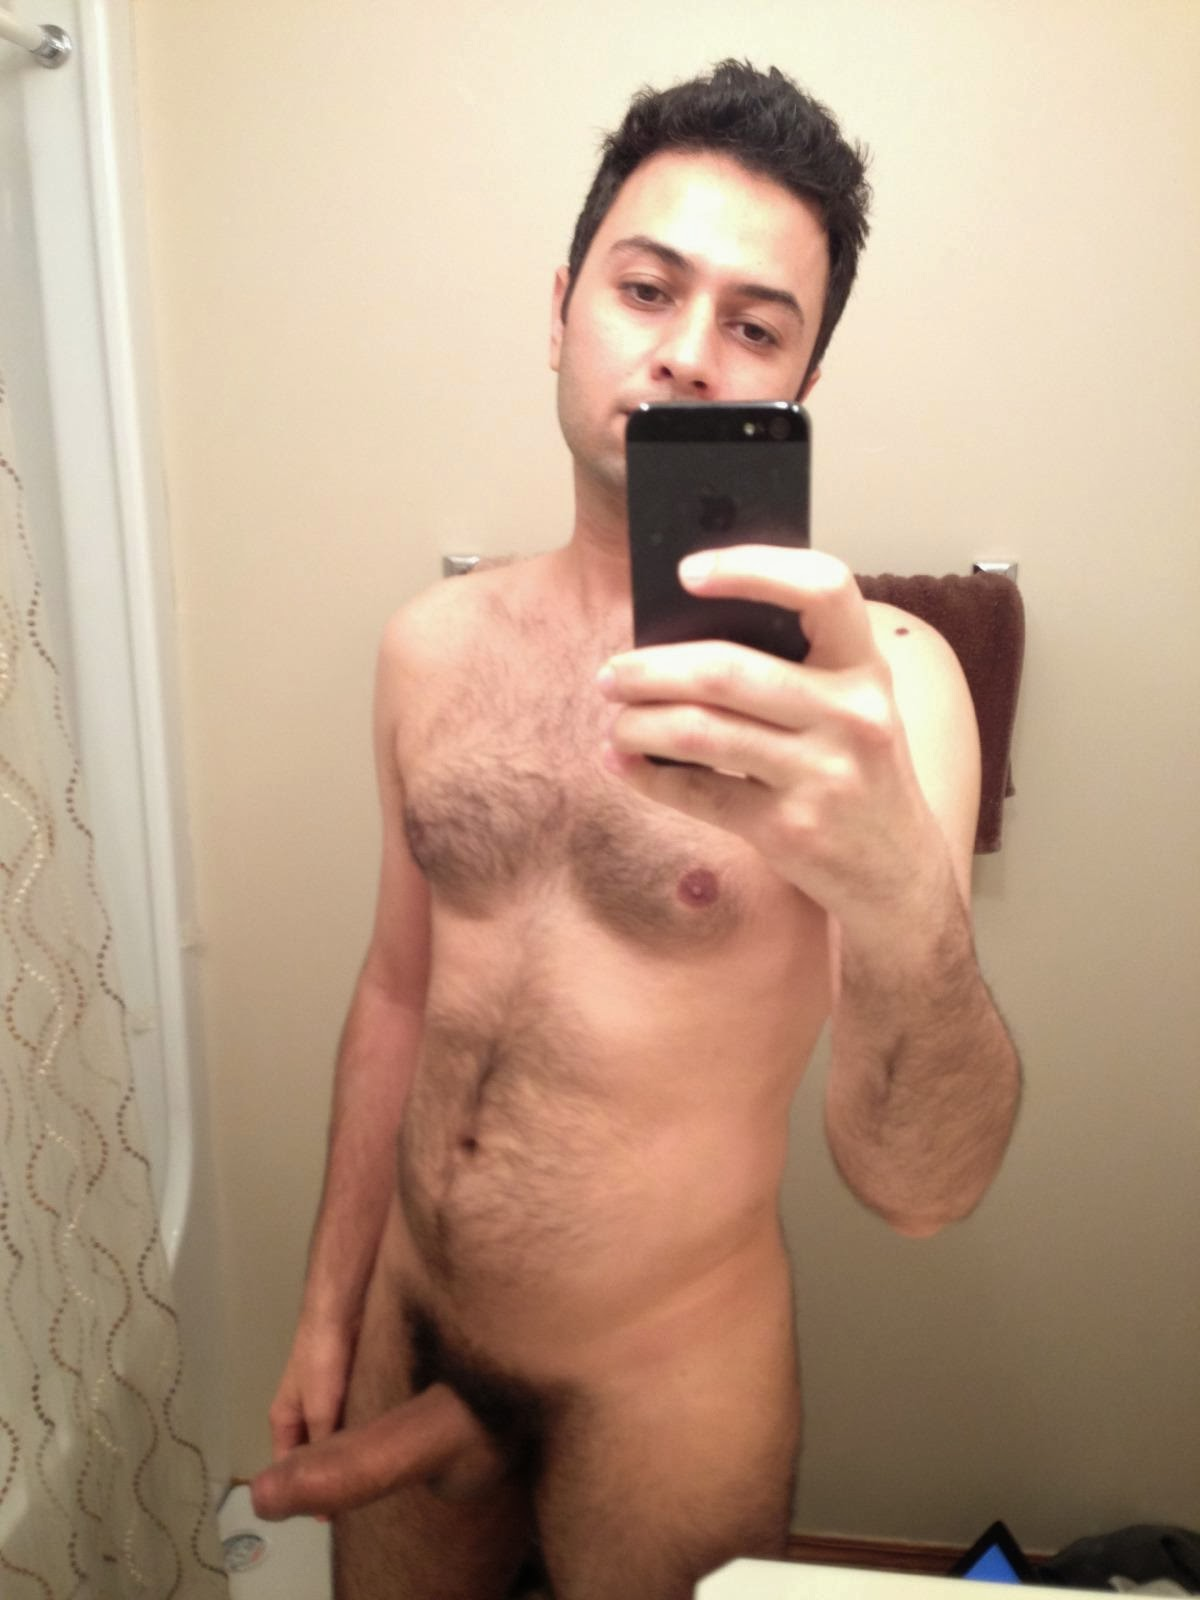 Hairy Naked Guys Tumblr